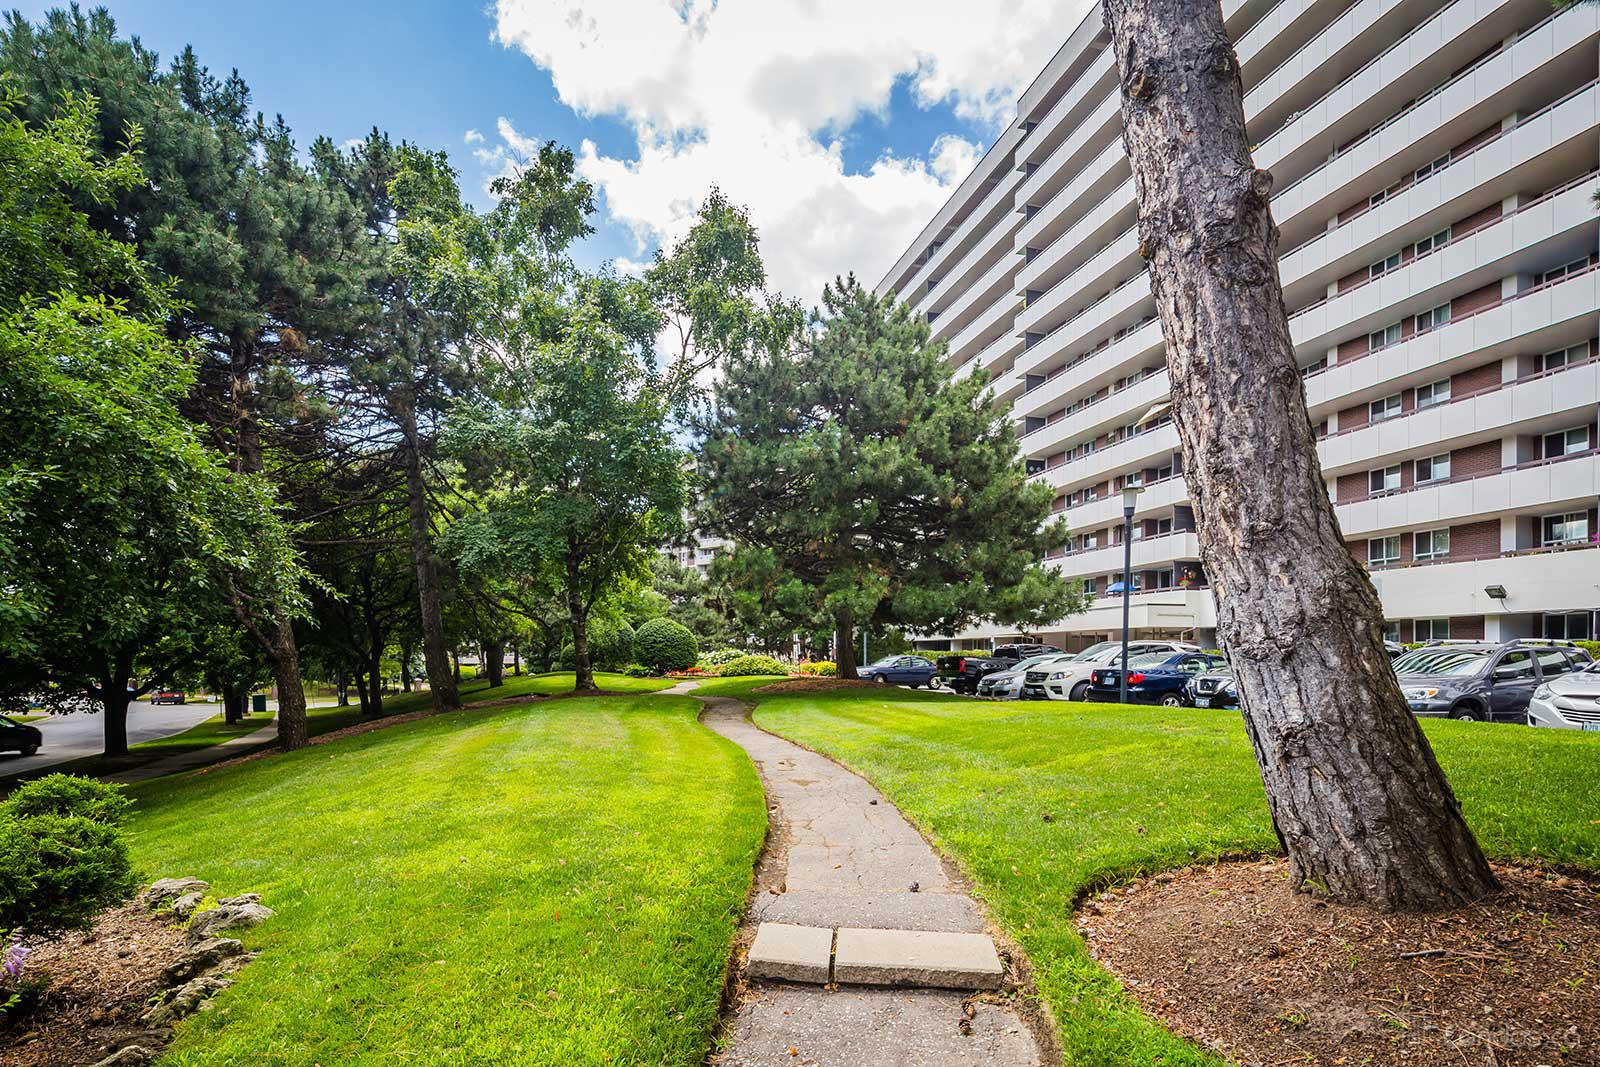 Royal Orchard II at 80 Inverlochy Blvd, Markham 0